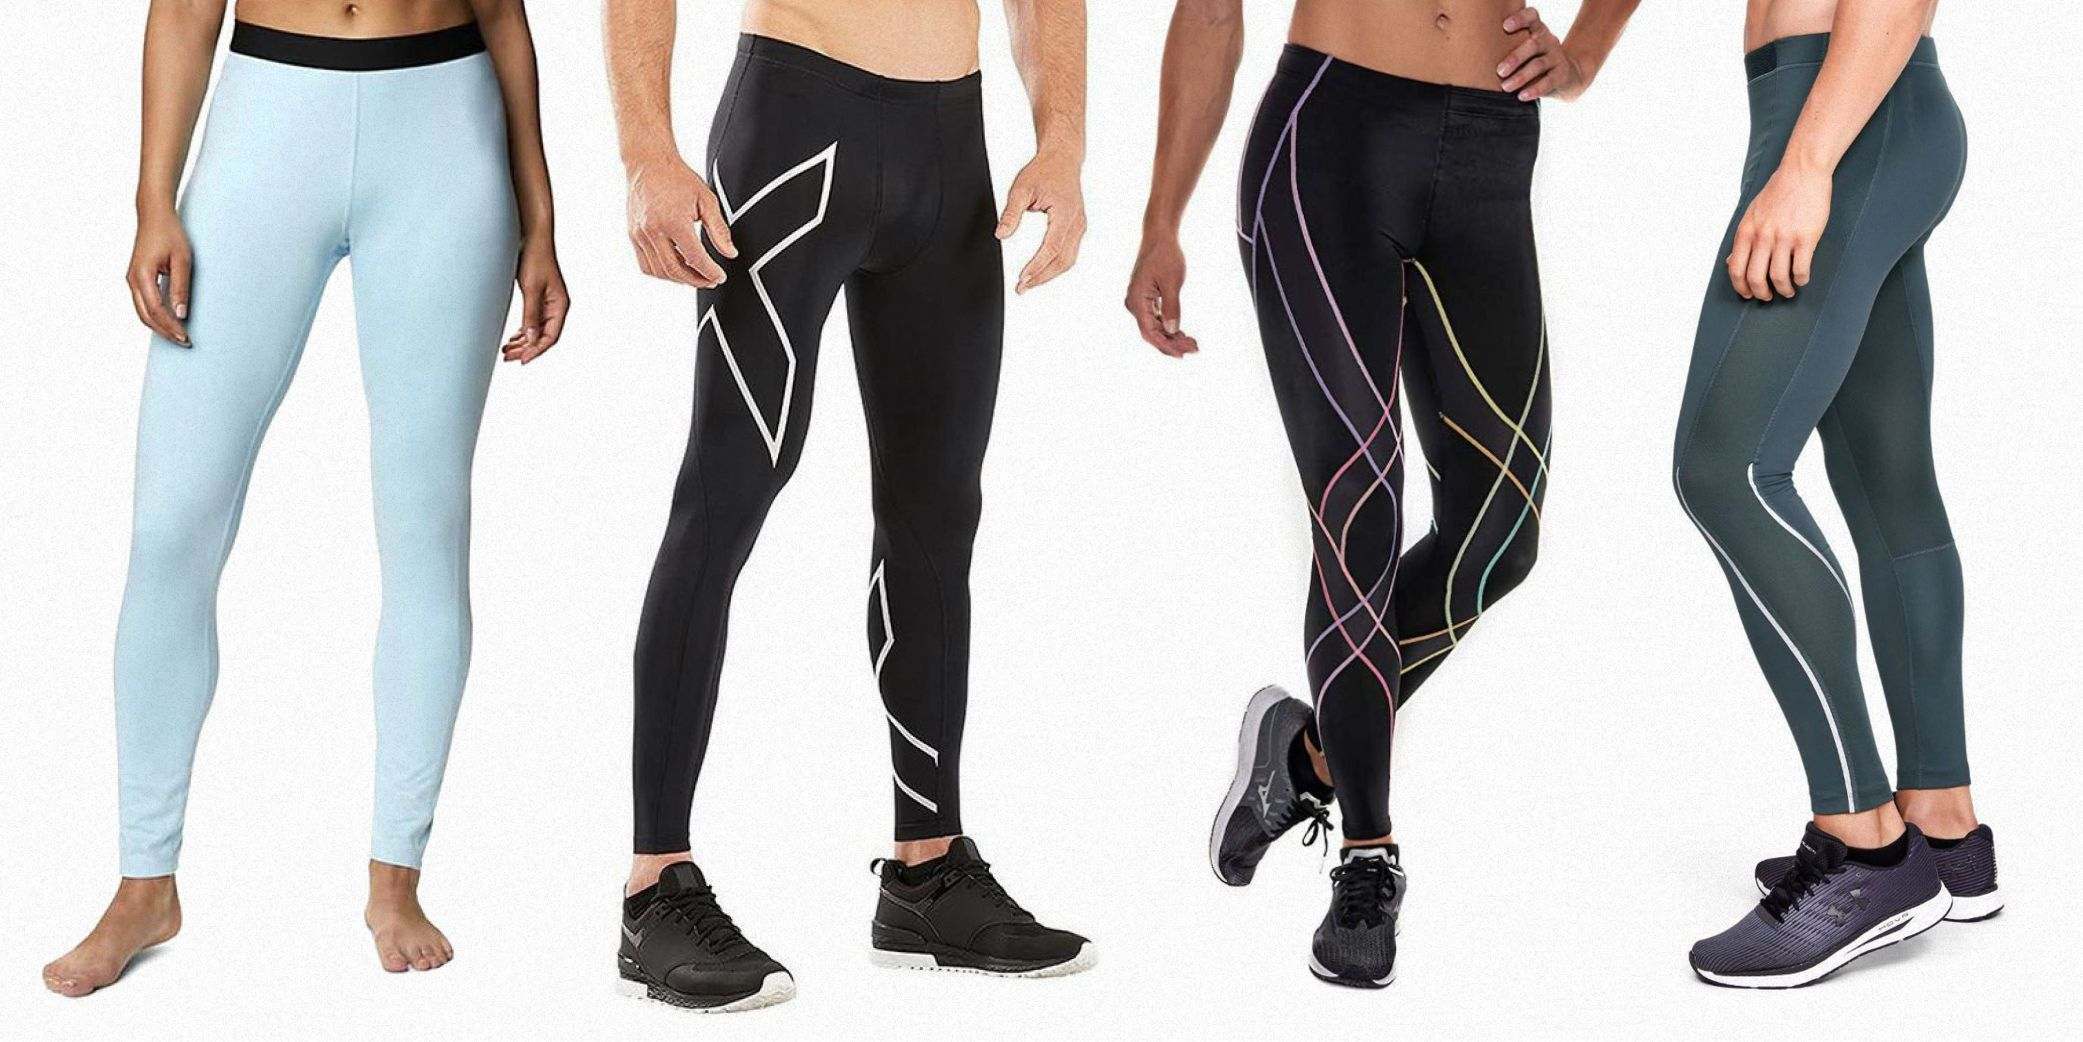 Descanso Informar Humilde  Best Compression Leggings 2020 | Compression Tights for Runners